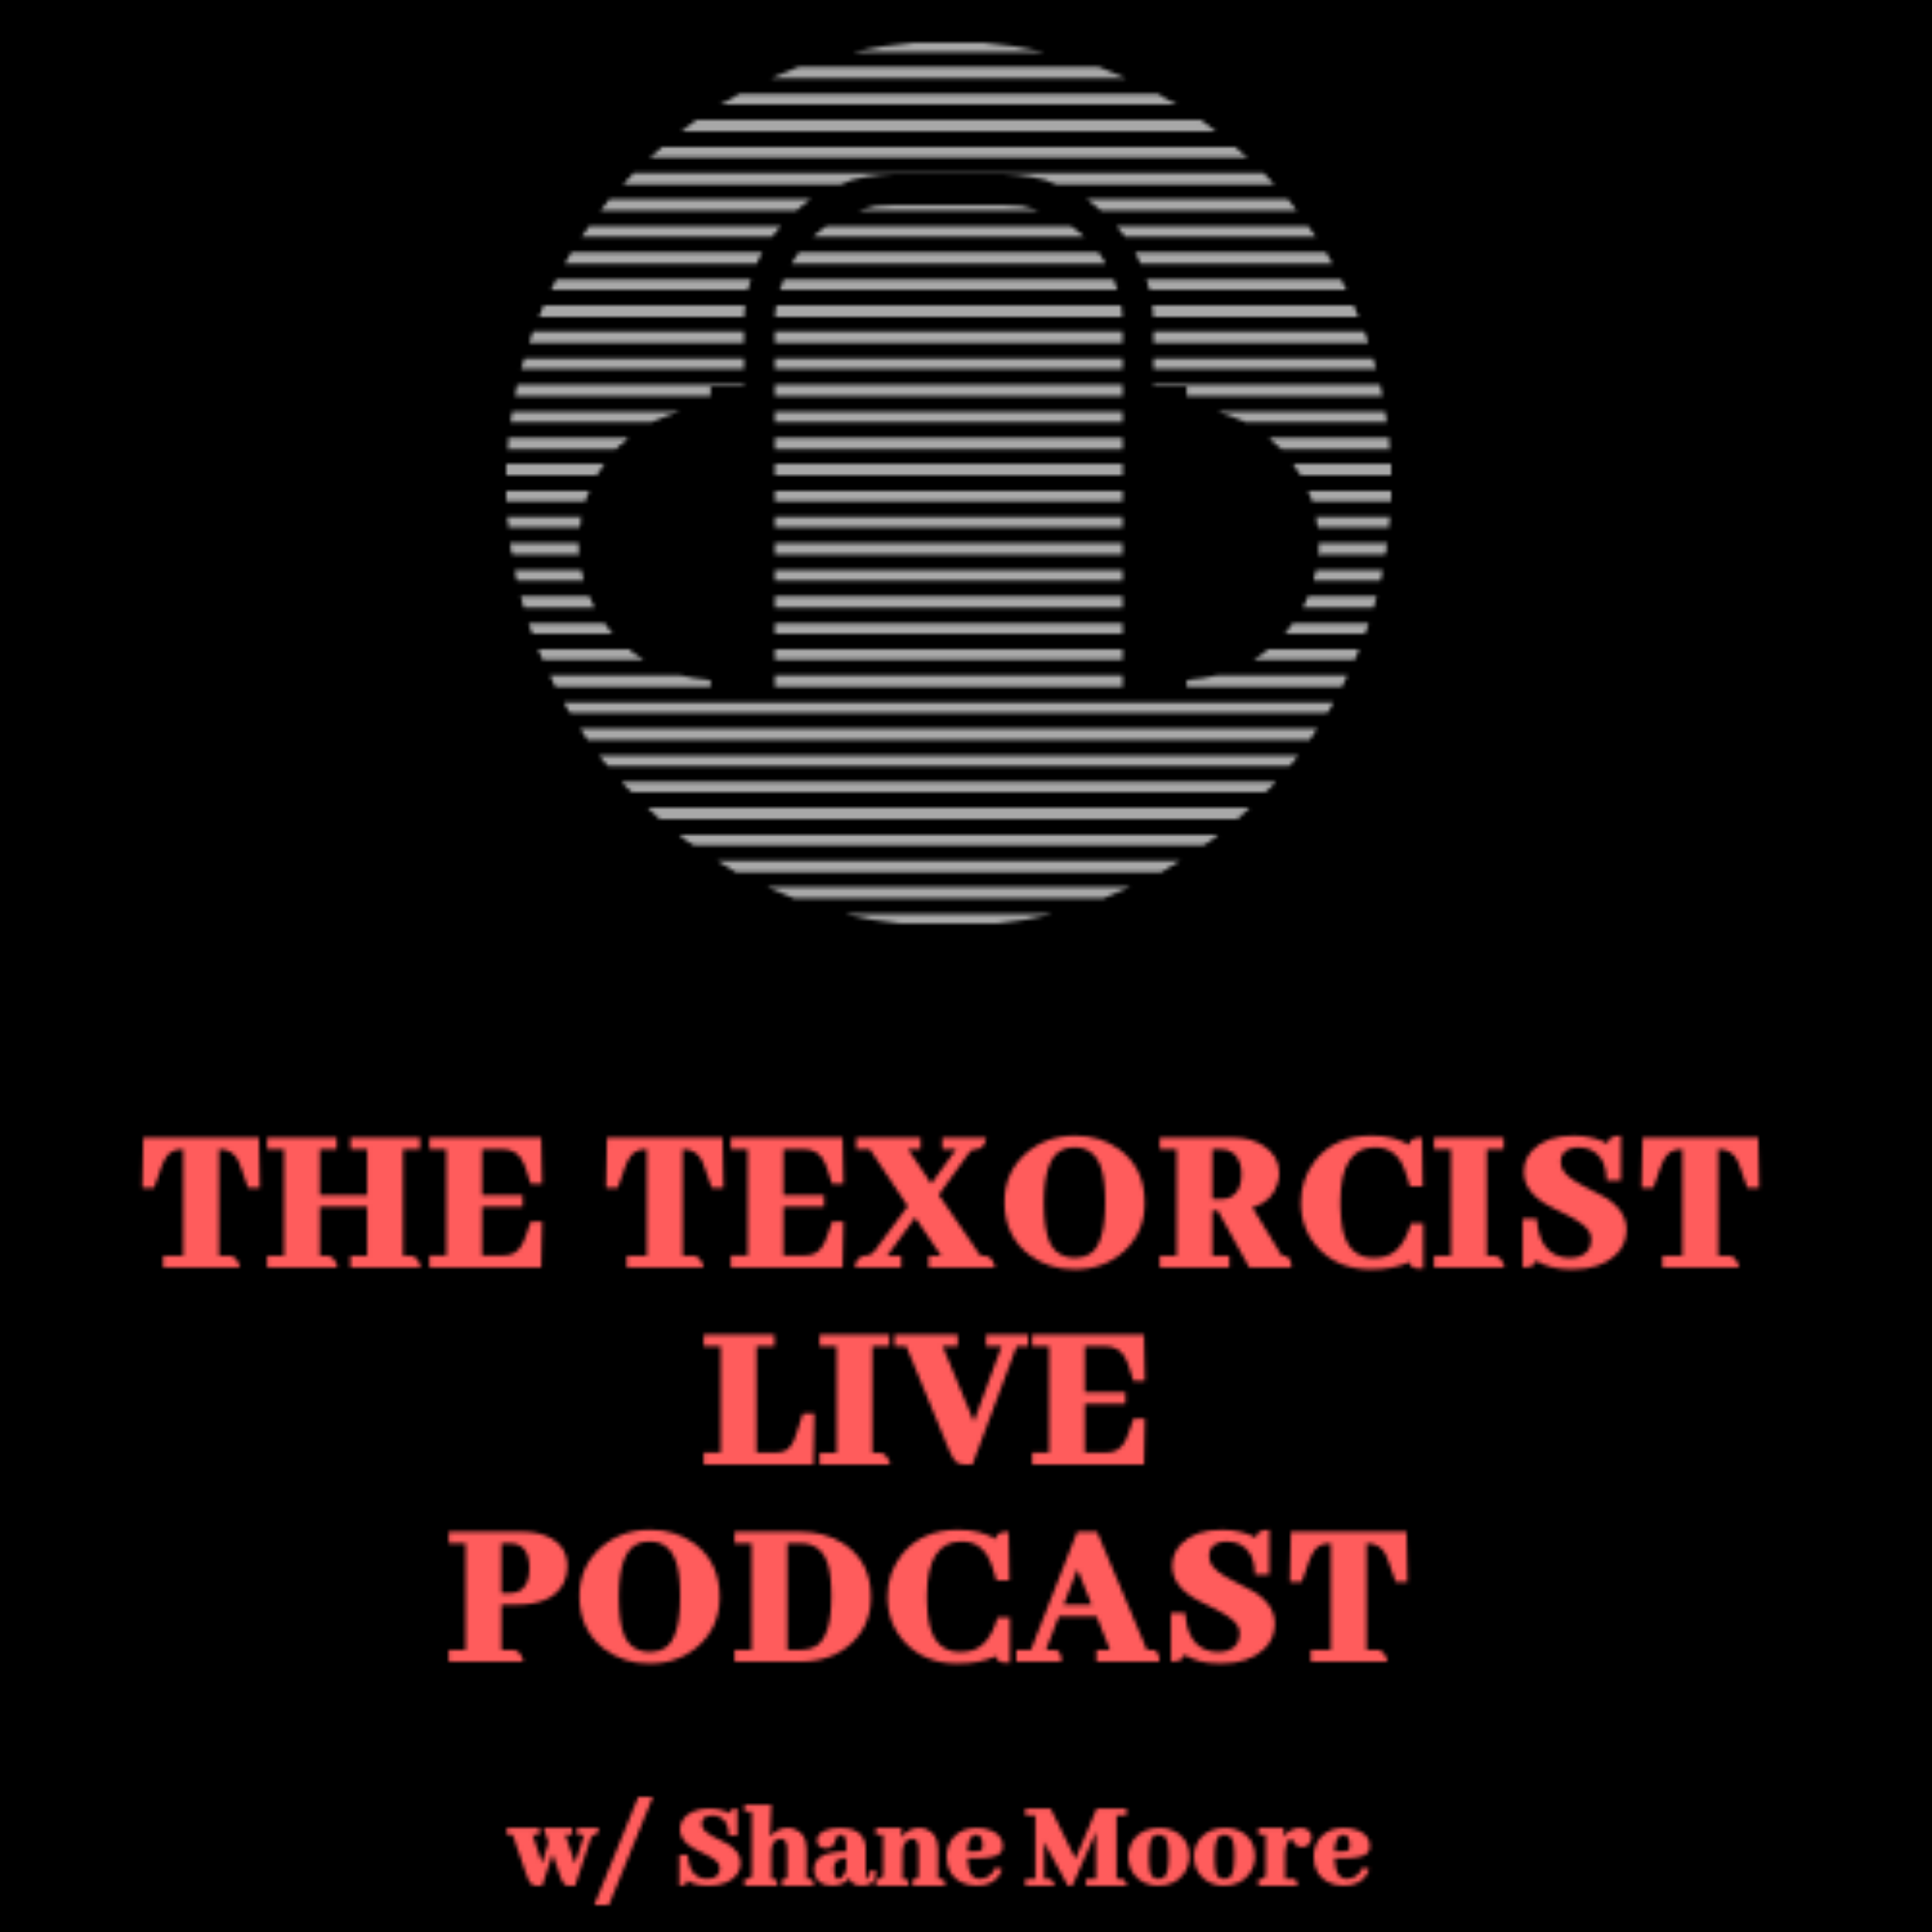 The Texorcist Live Podcast album art